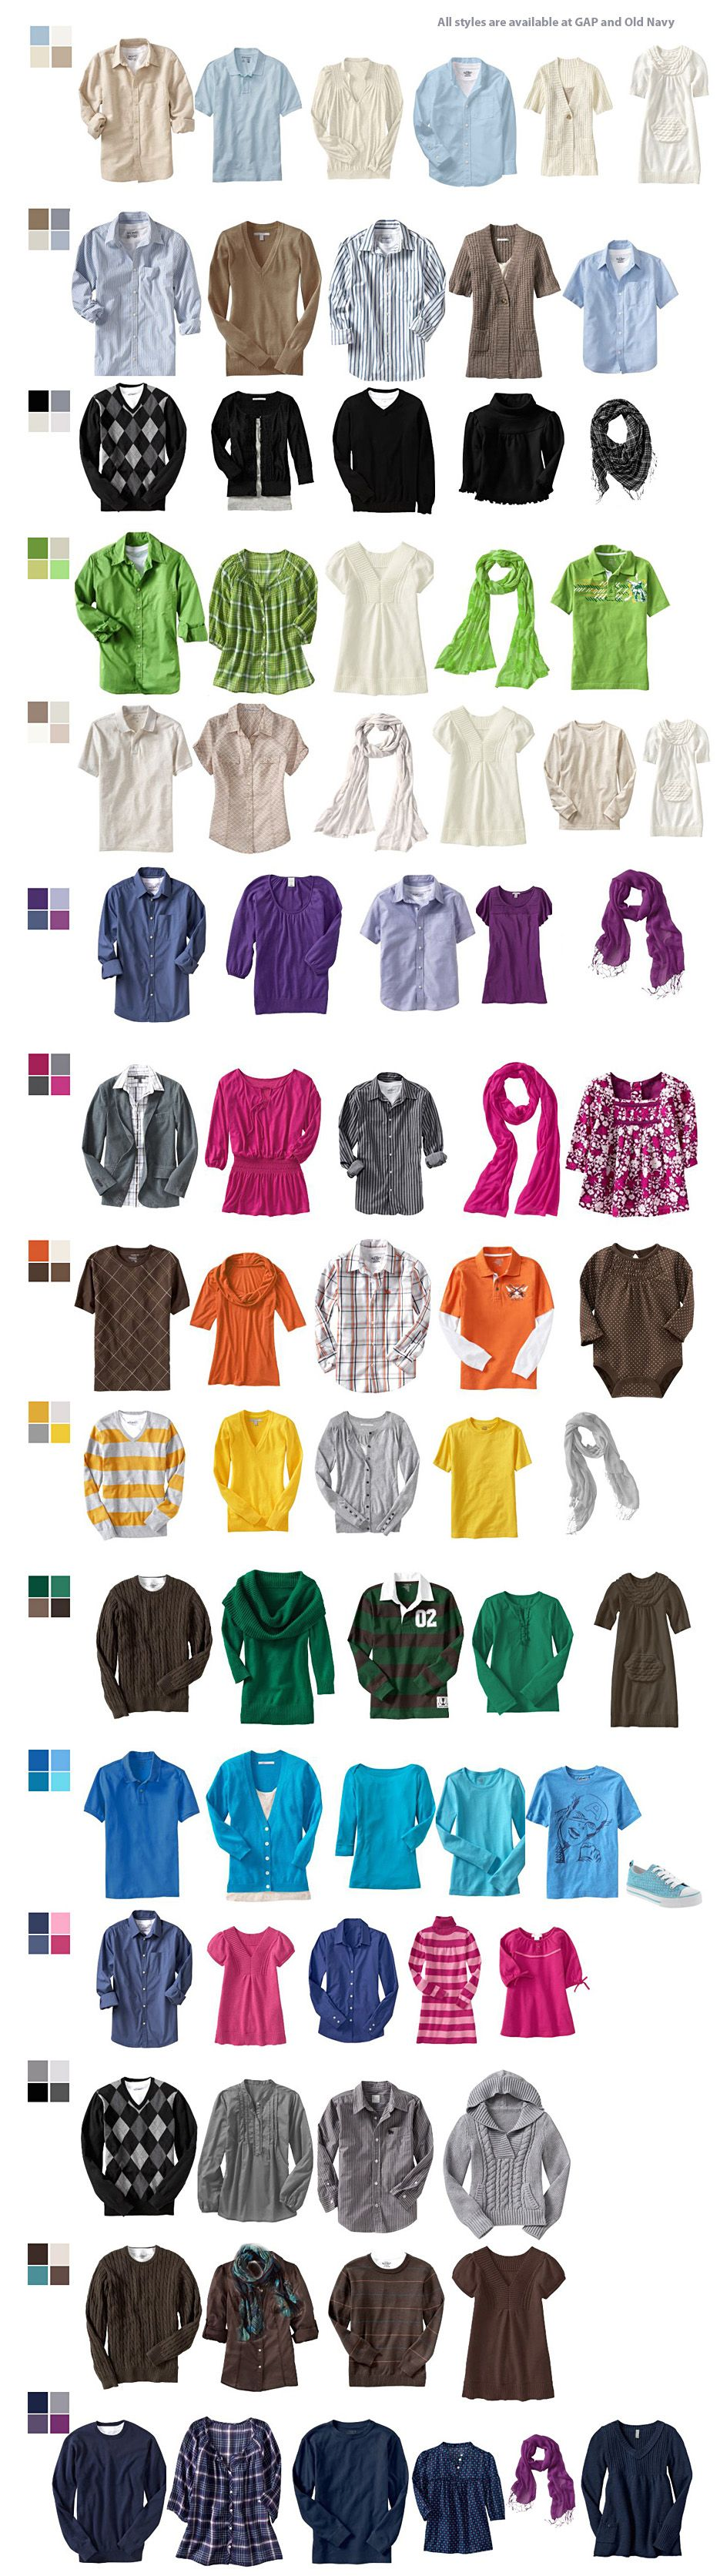 Ideas for coordinating clothing as a family we need a family ideas for coordinating clothing as a family we need a family picture nvjuhfo Image collections